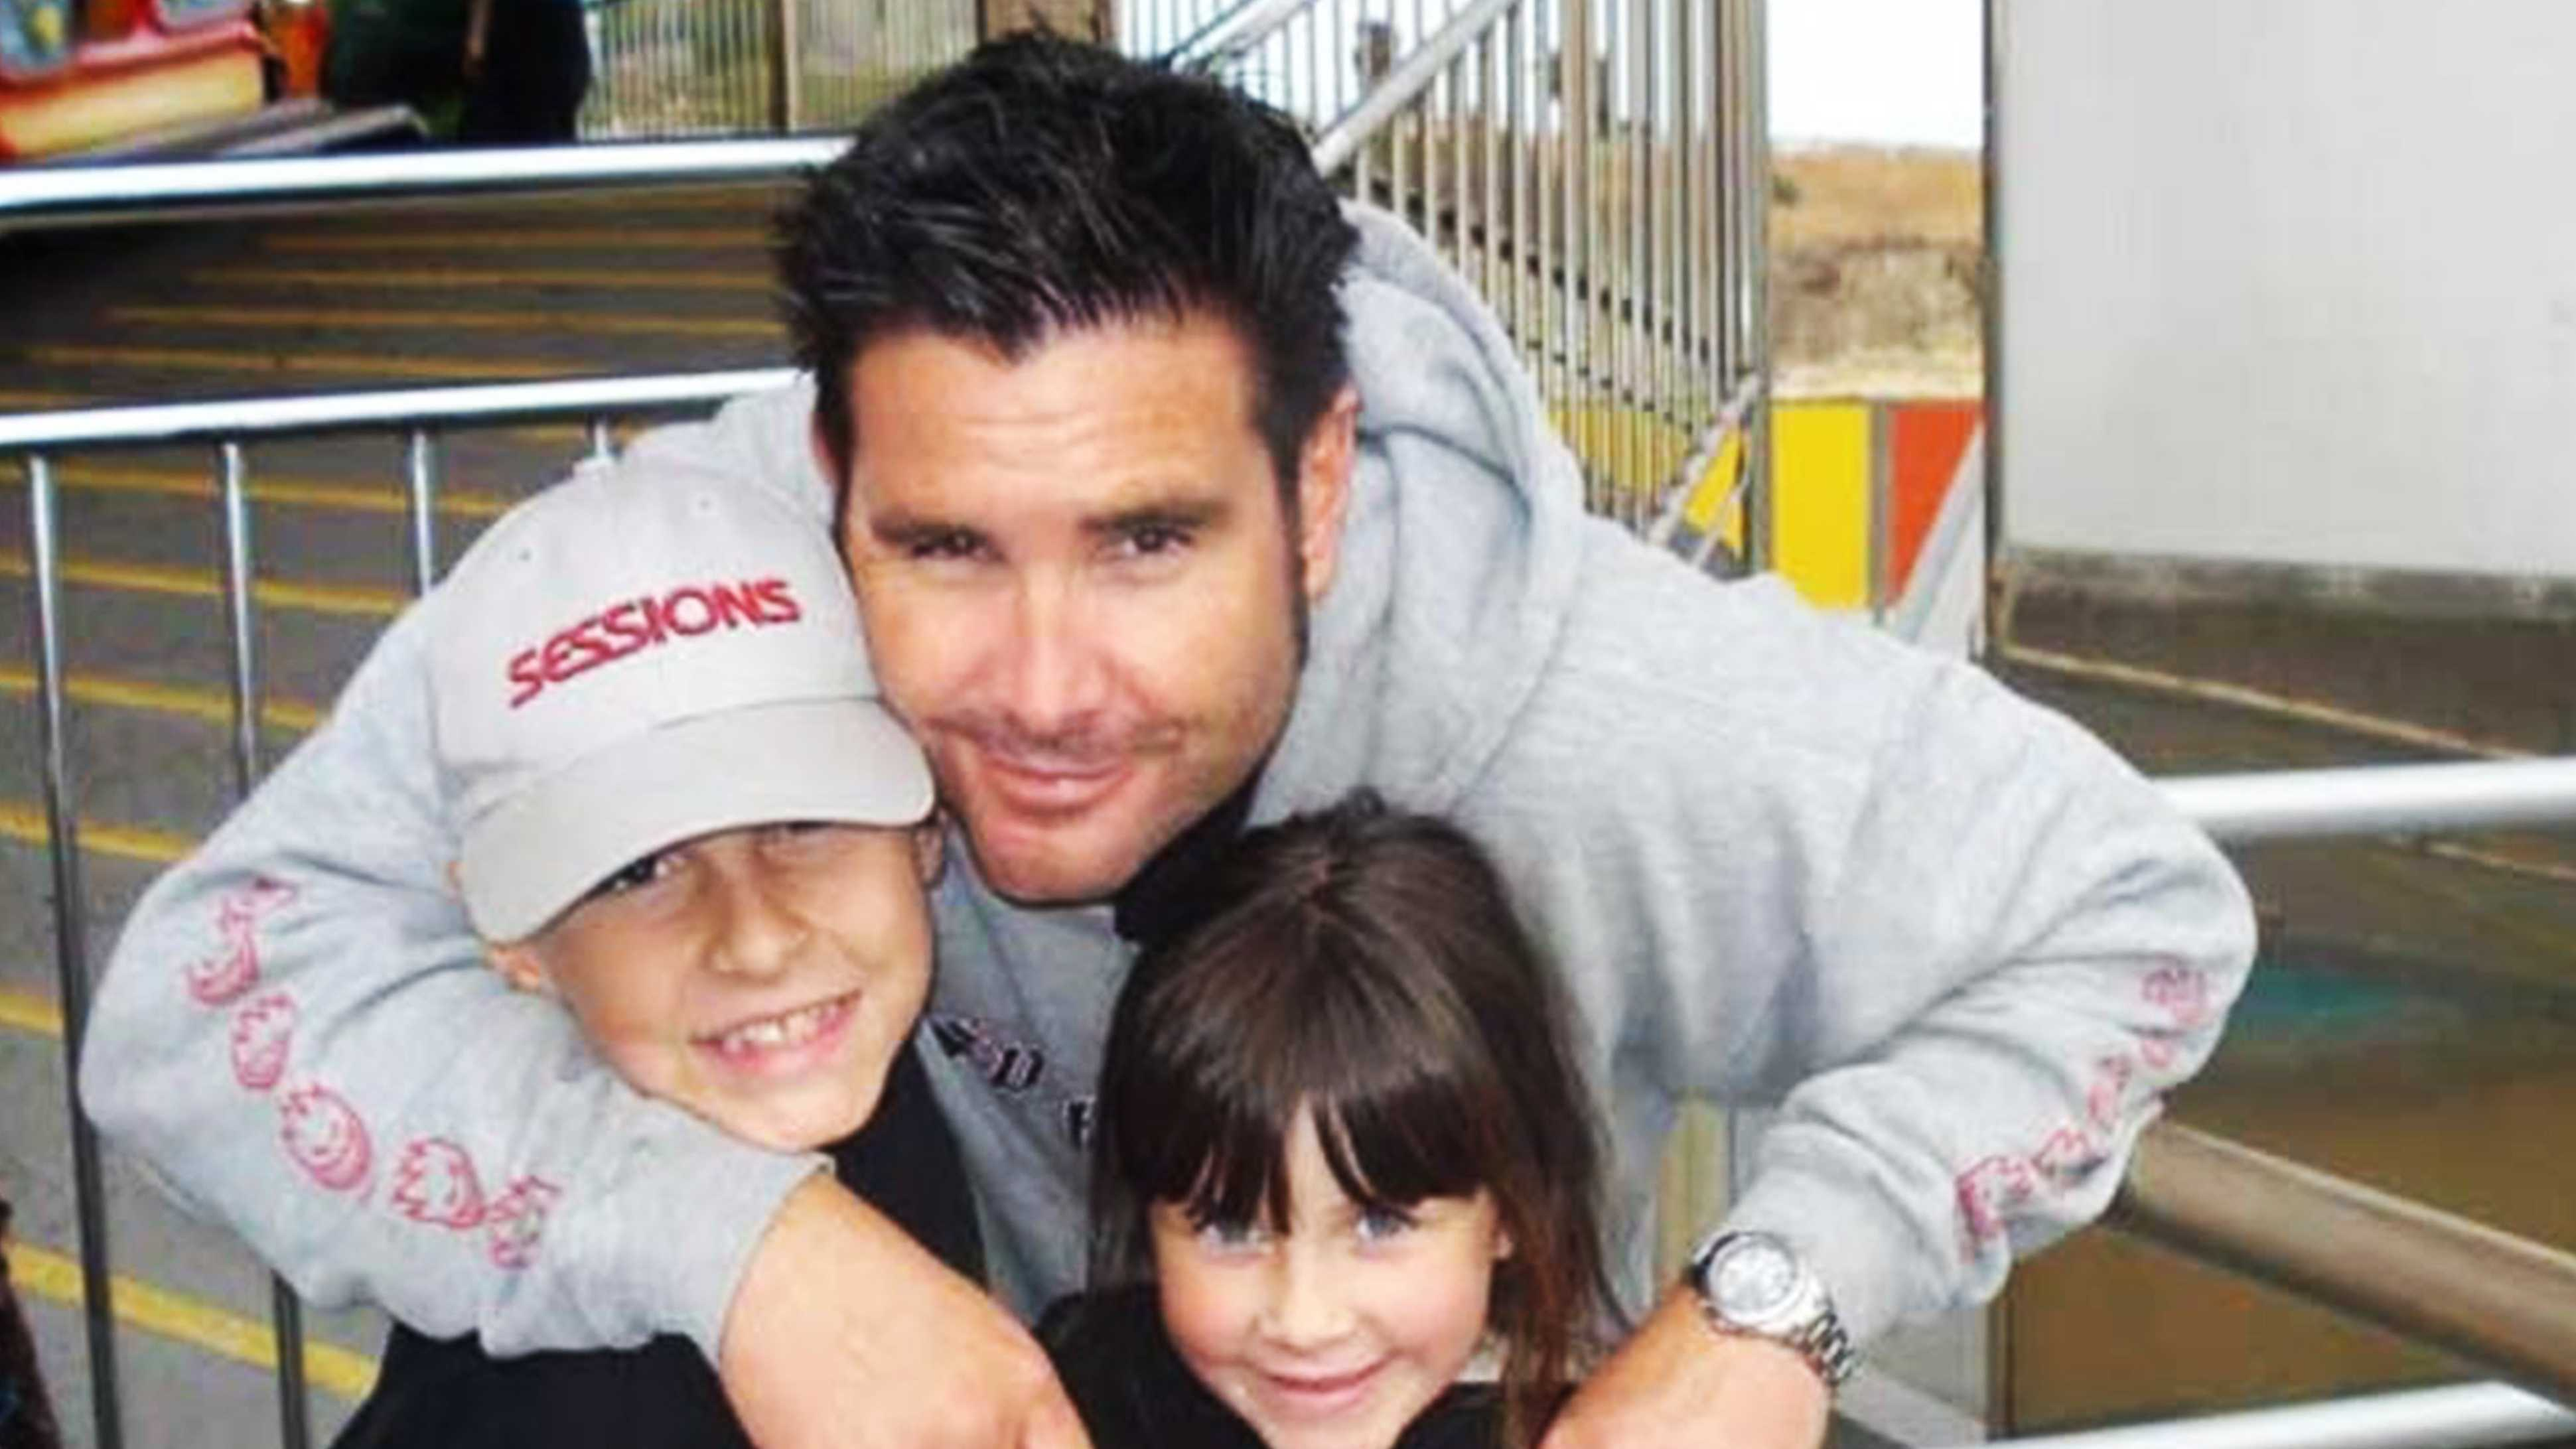 Bryan Stow smiles with his two kids.